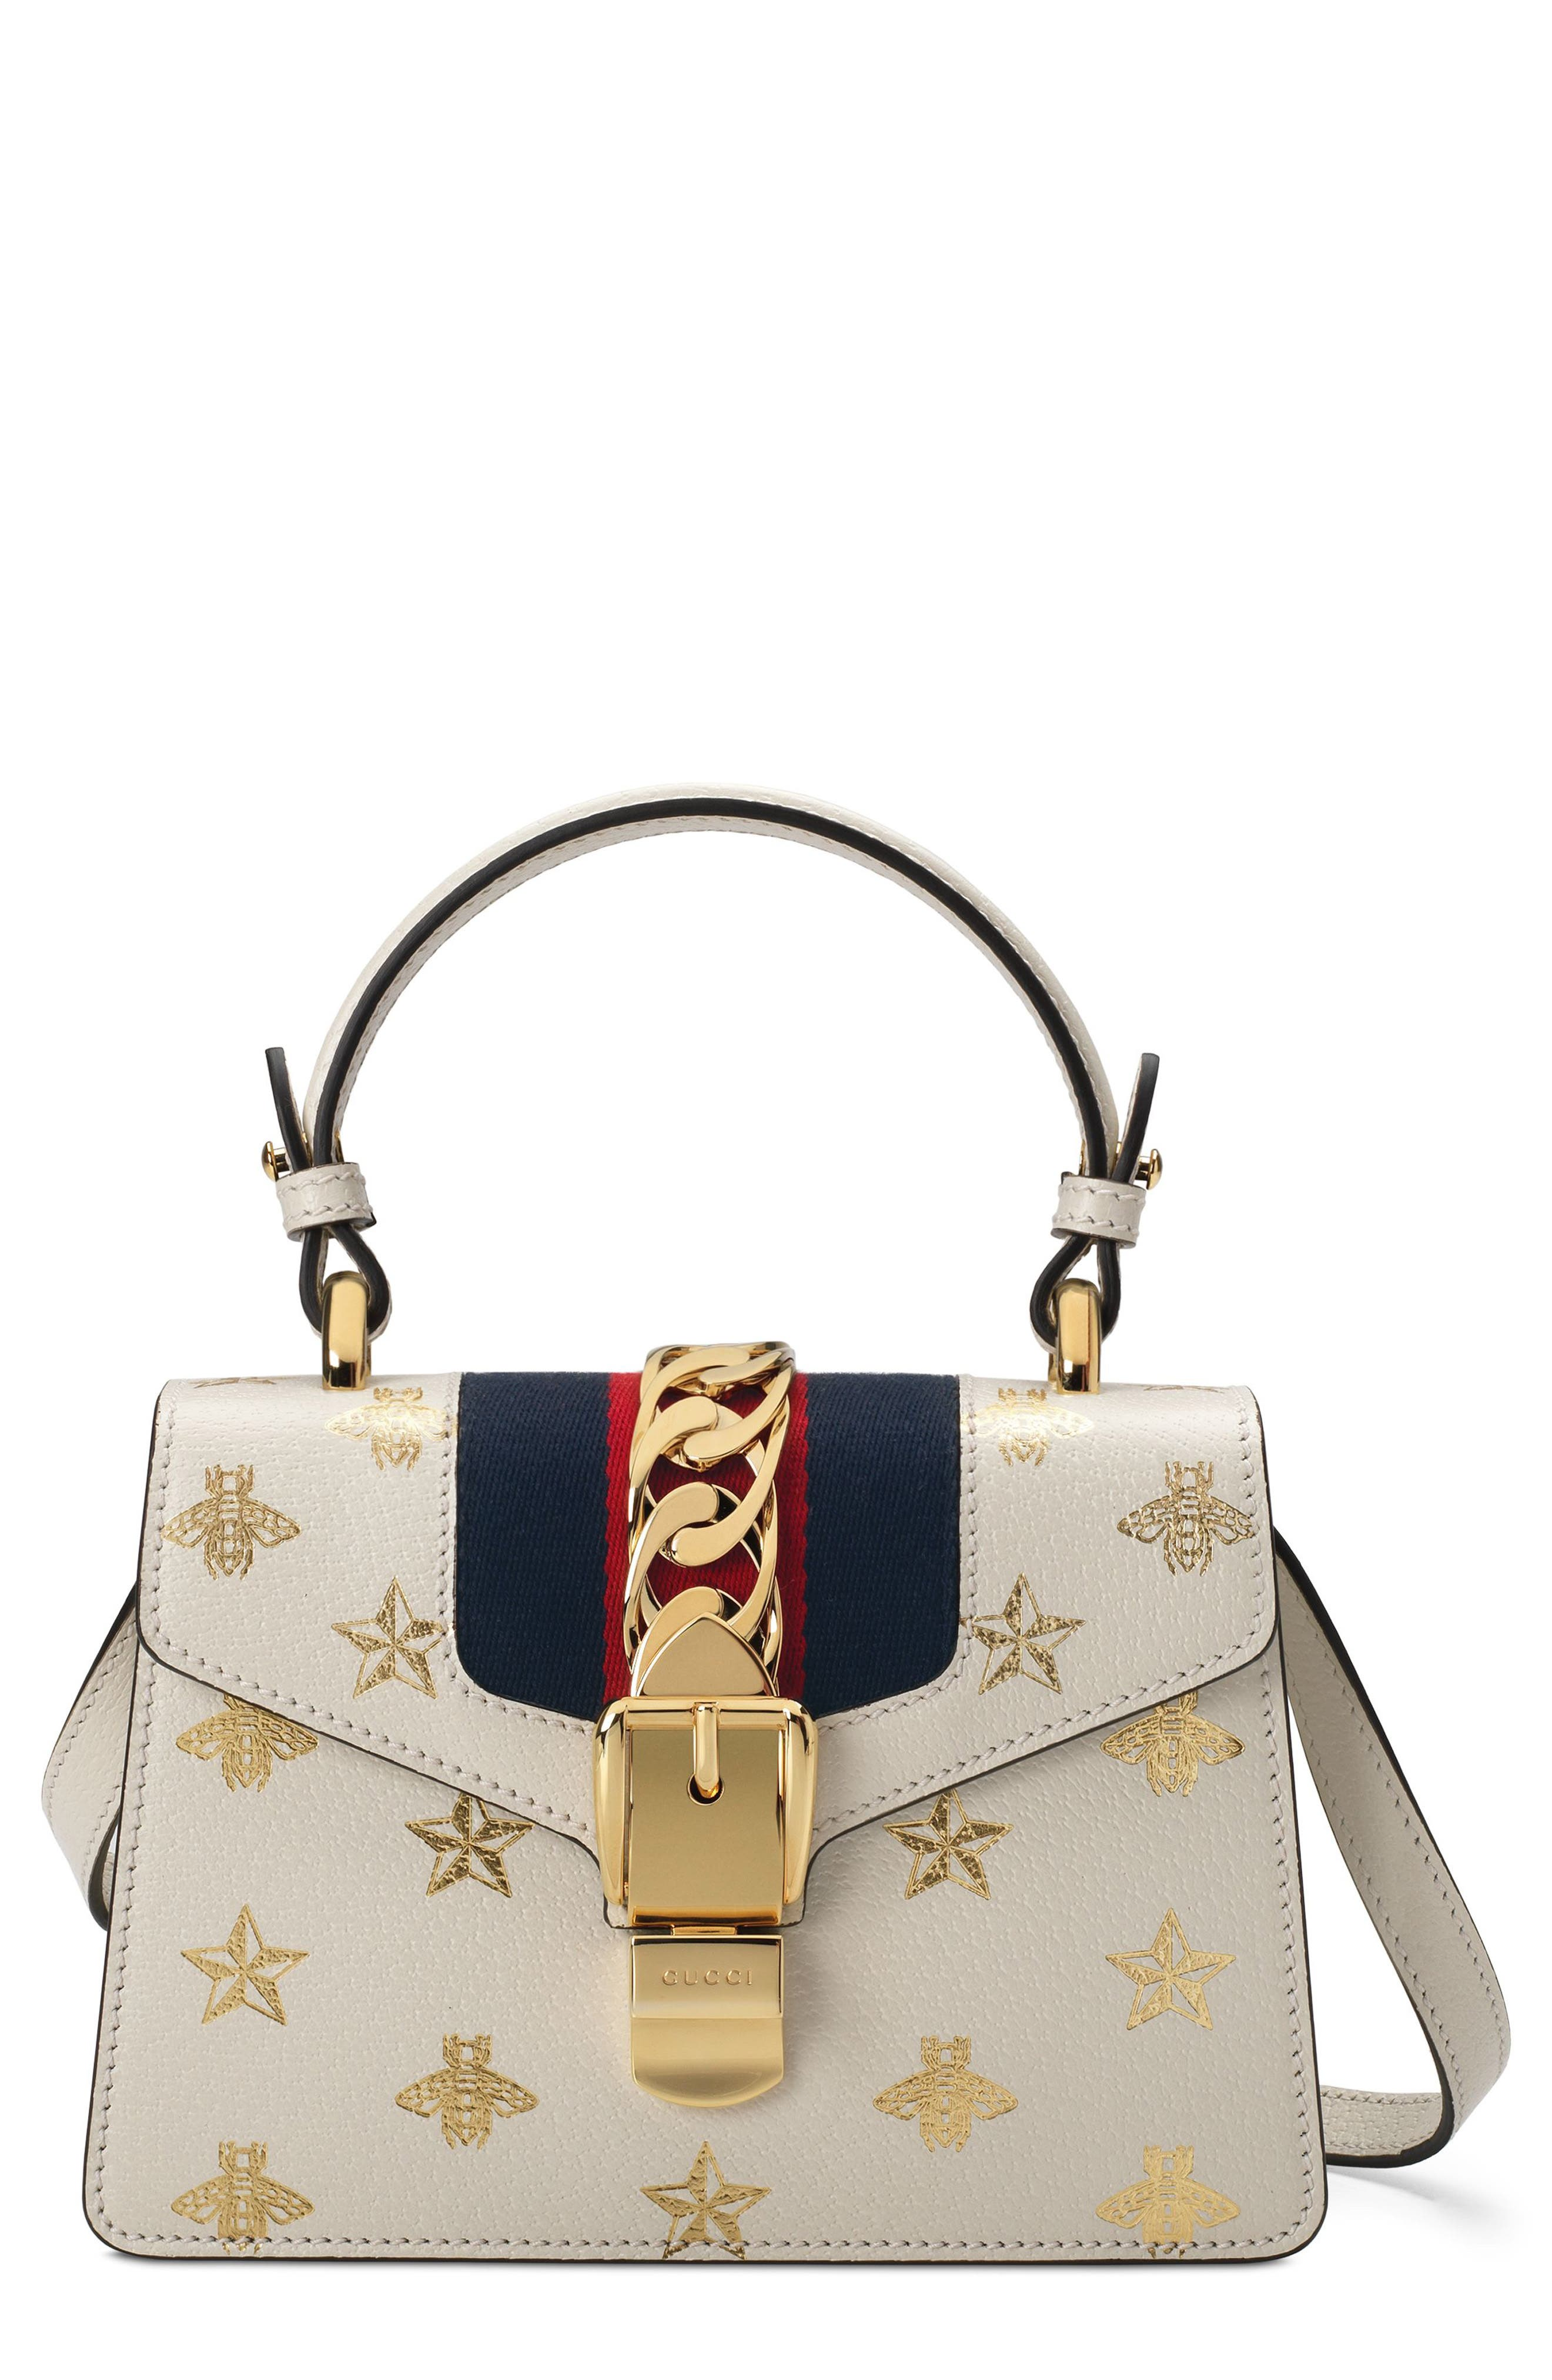 Small Sylvie Top Handle Leather Shoulder Bag - White in Mystic White/ Oro/ Blue/ Red